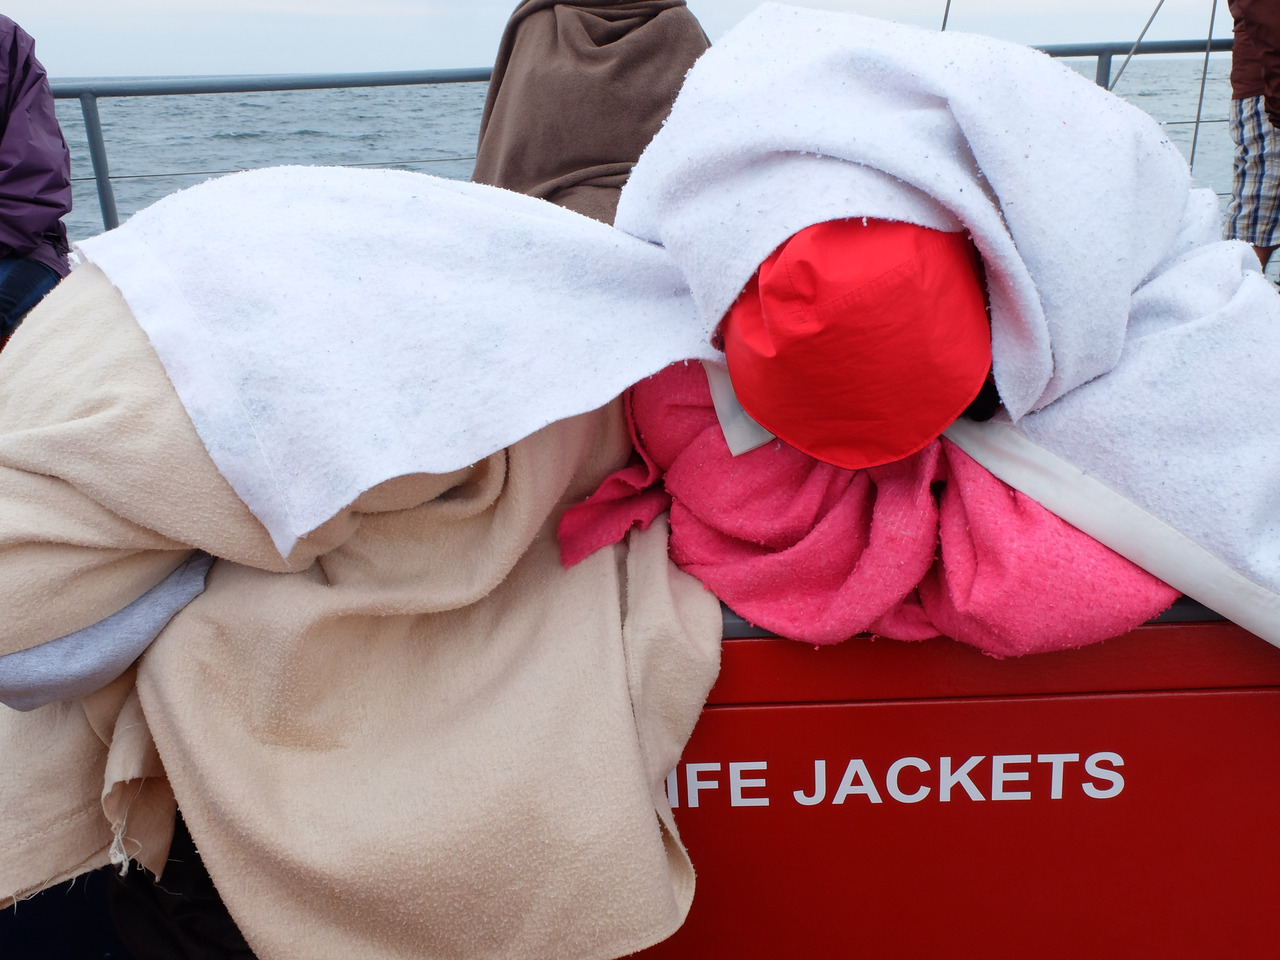 mangia minga // Travels: Grand Manan, New Brunswick. Whale watching off Grand Manan was slightly chilly.